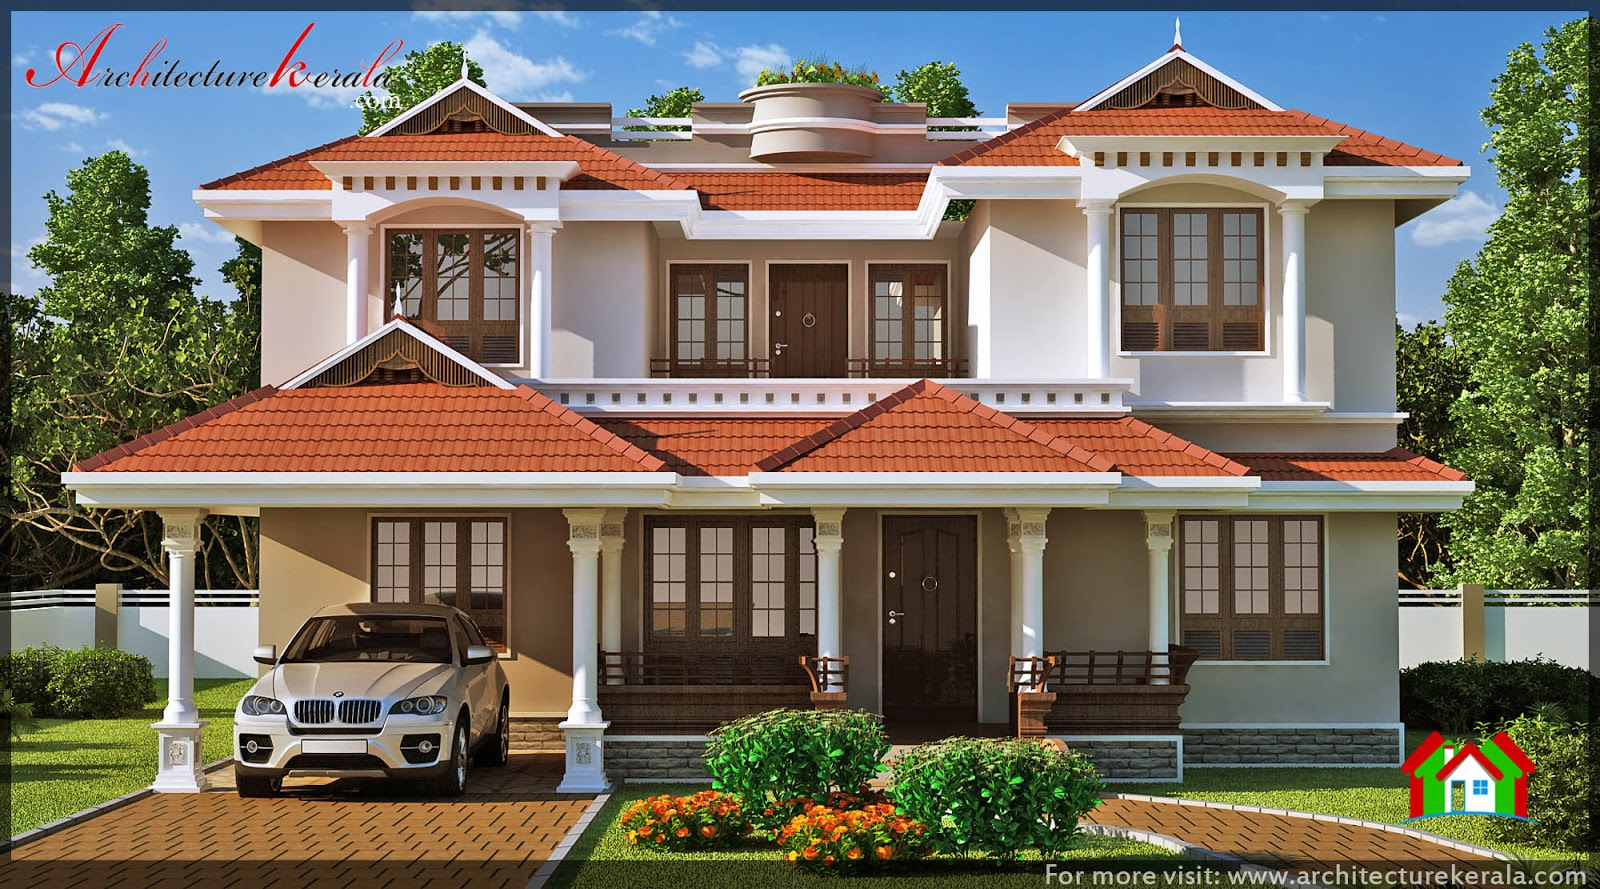 Traditional kerala house elevation architecture kerala for Kerala traditional home plans with photos